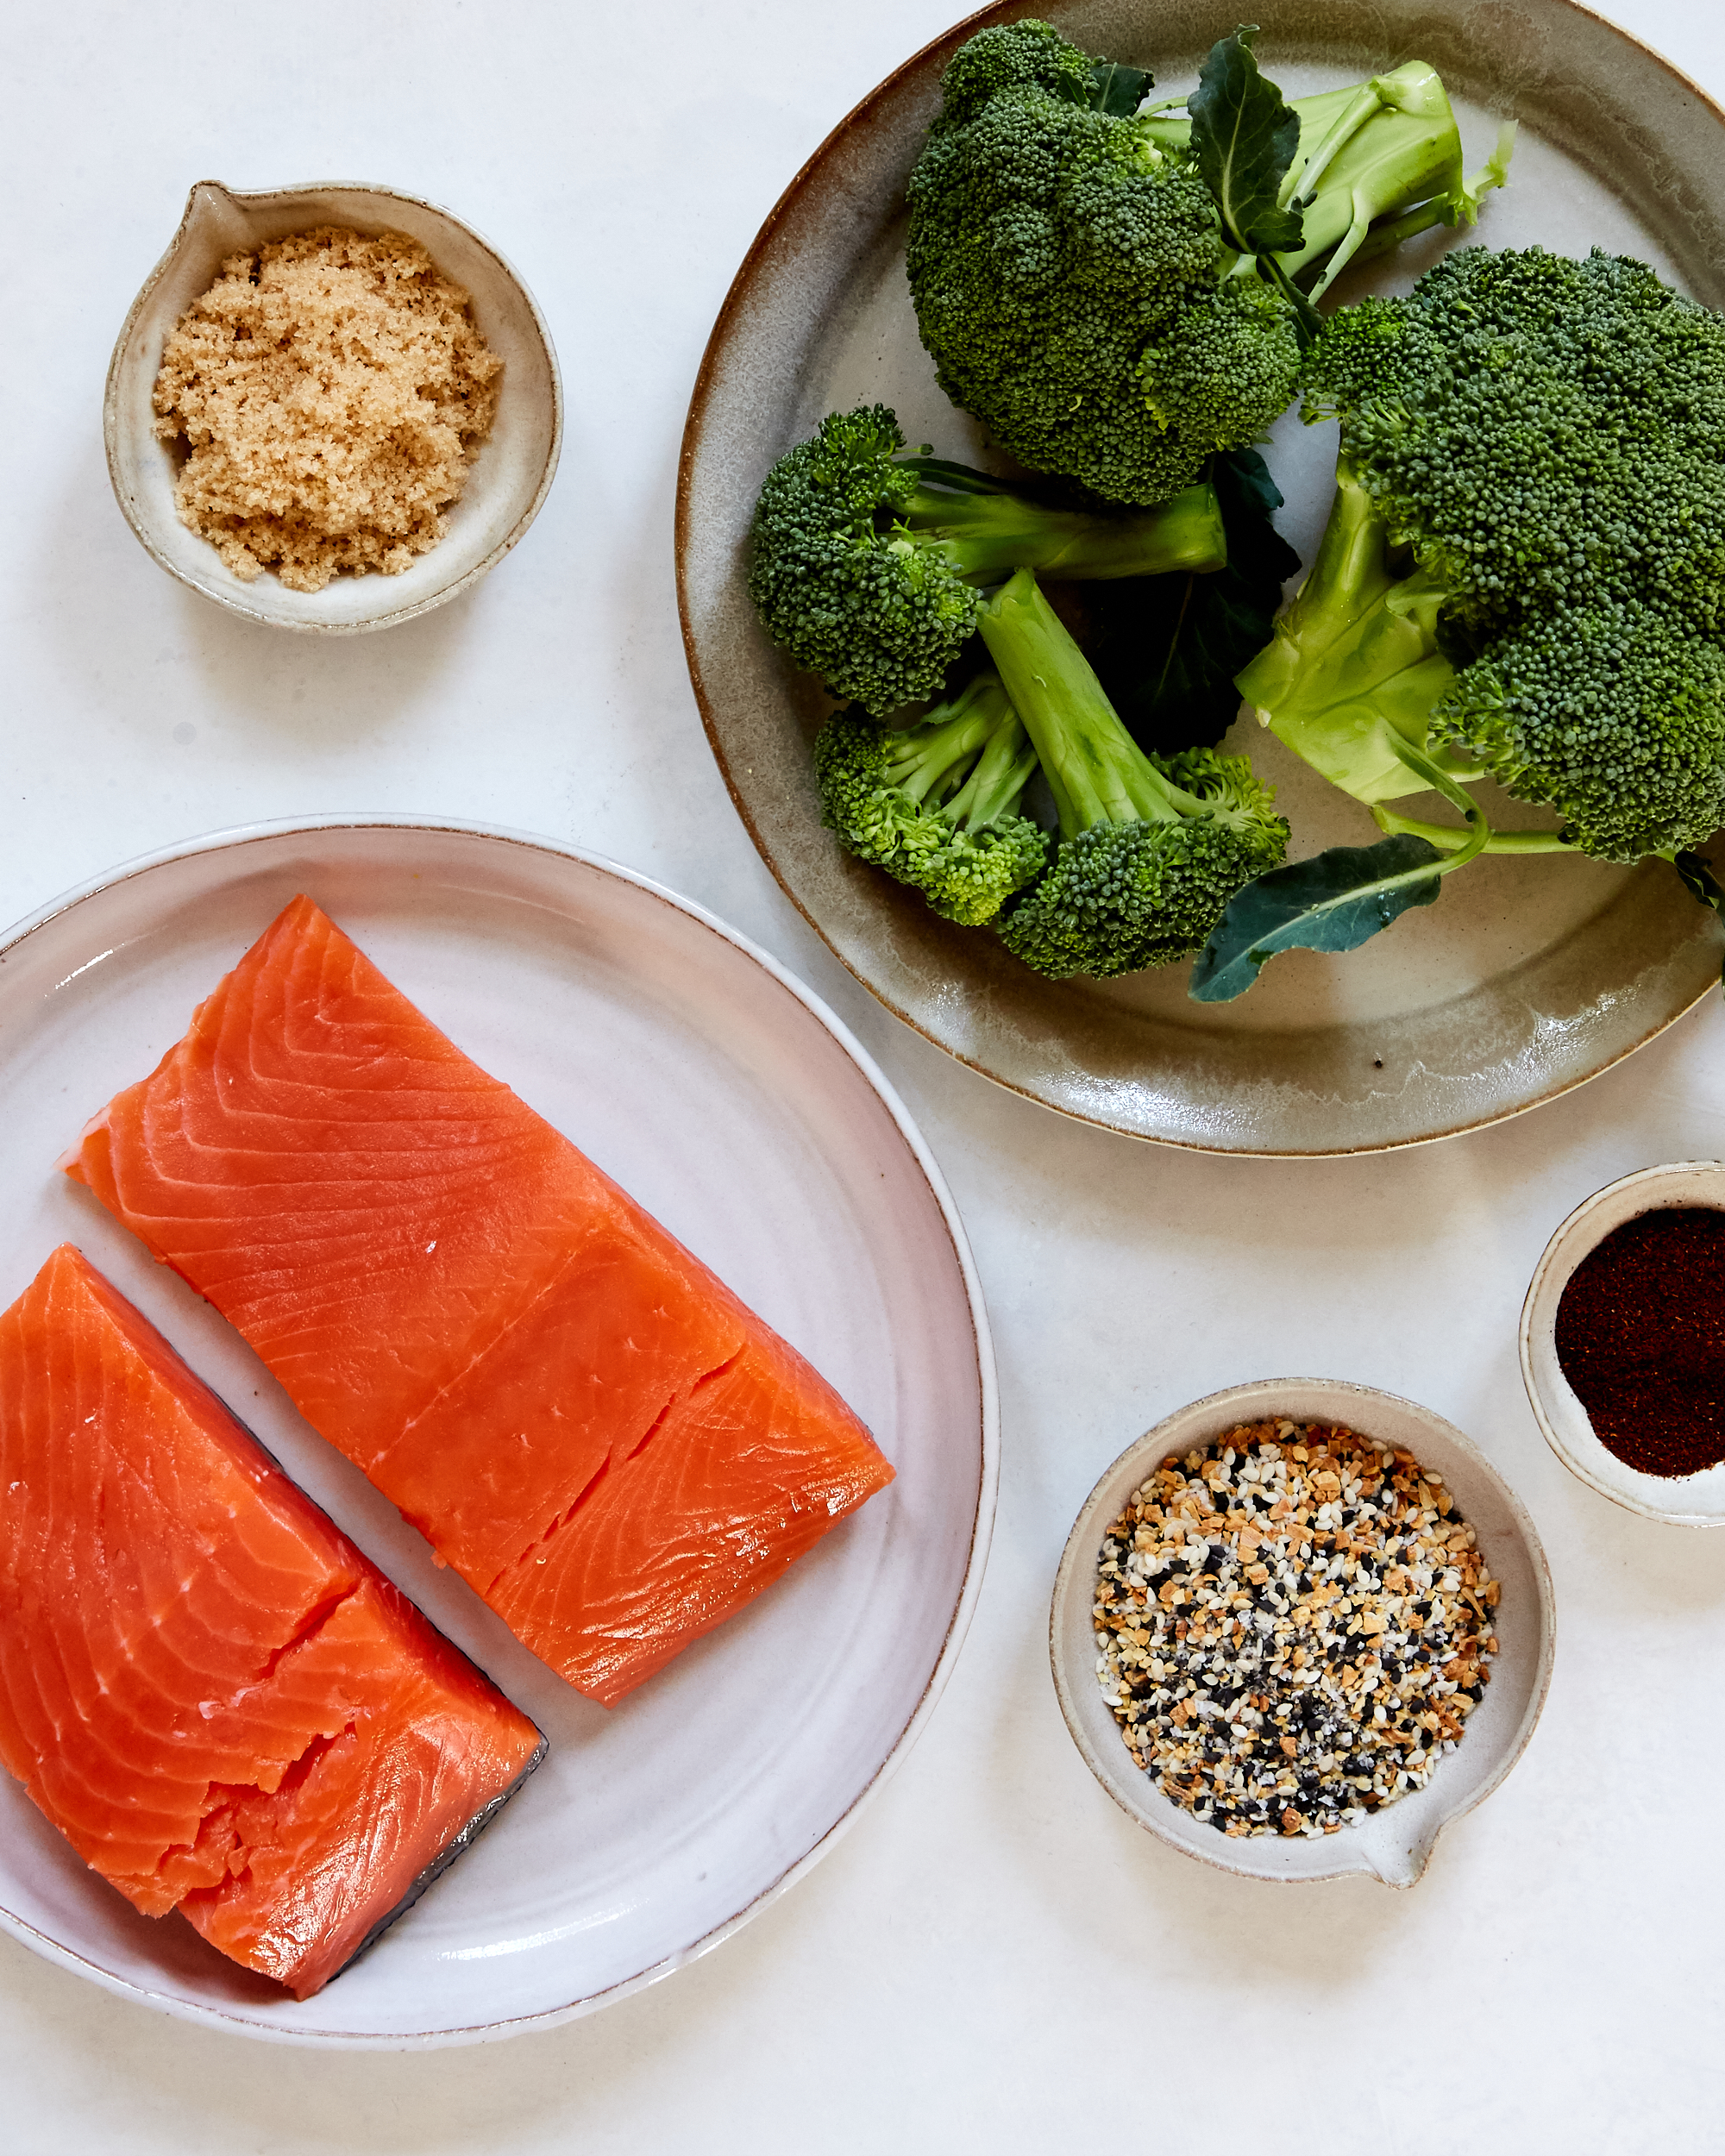 Five-Ingredient Dinner: Baked Salmon With Seasoned Broccoli